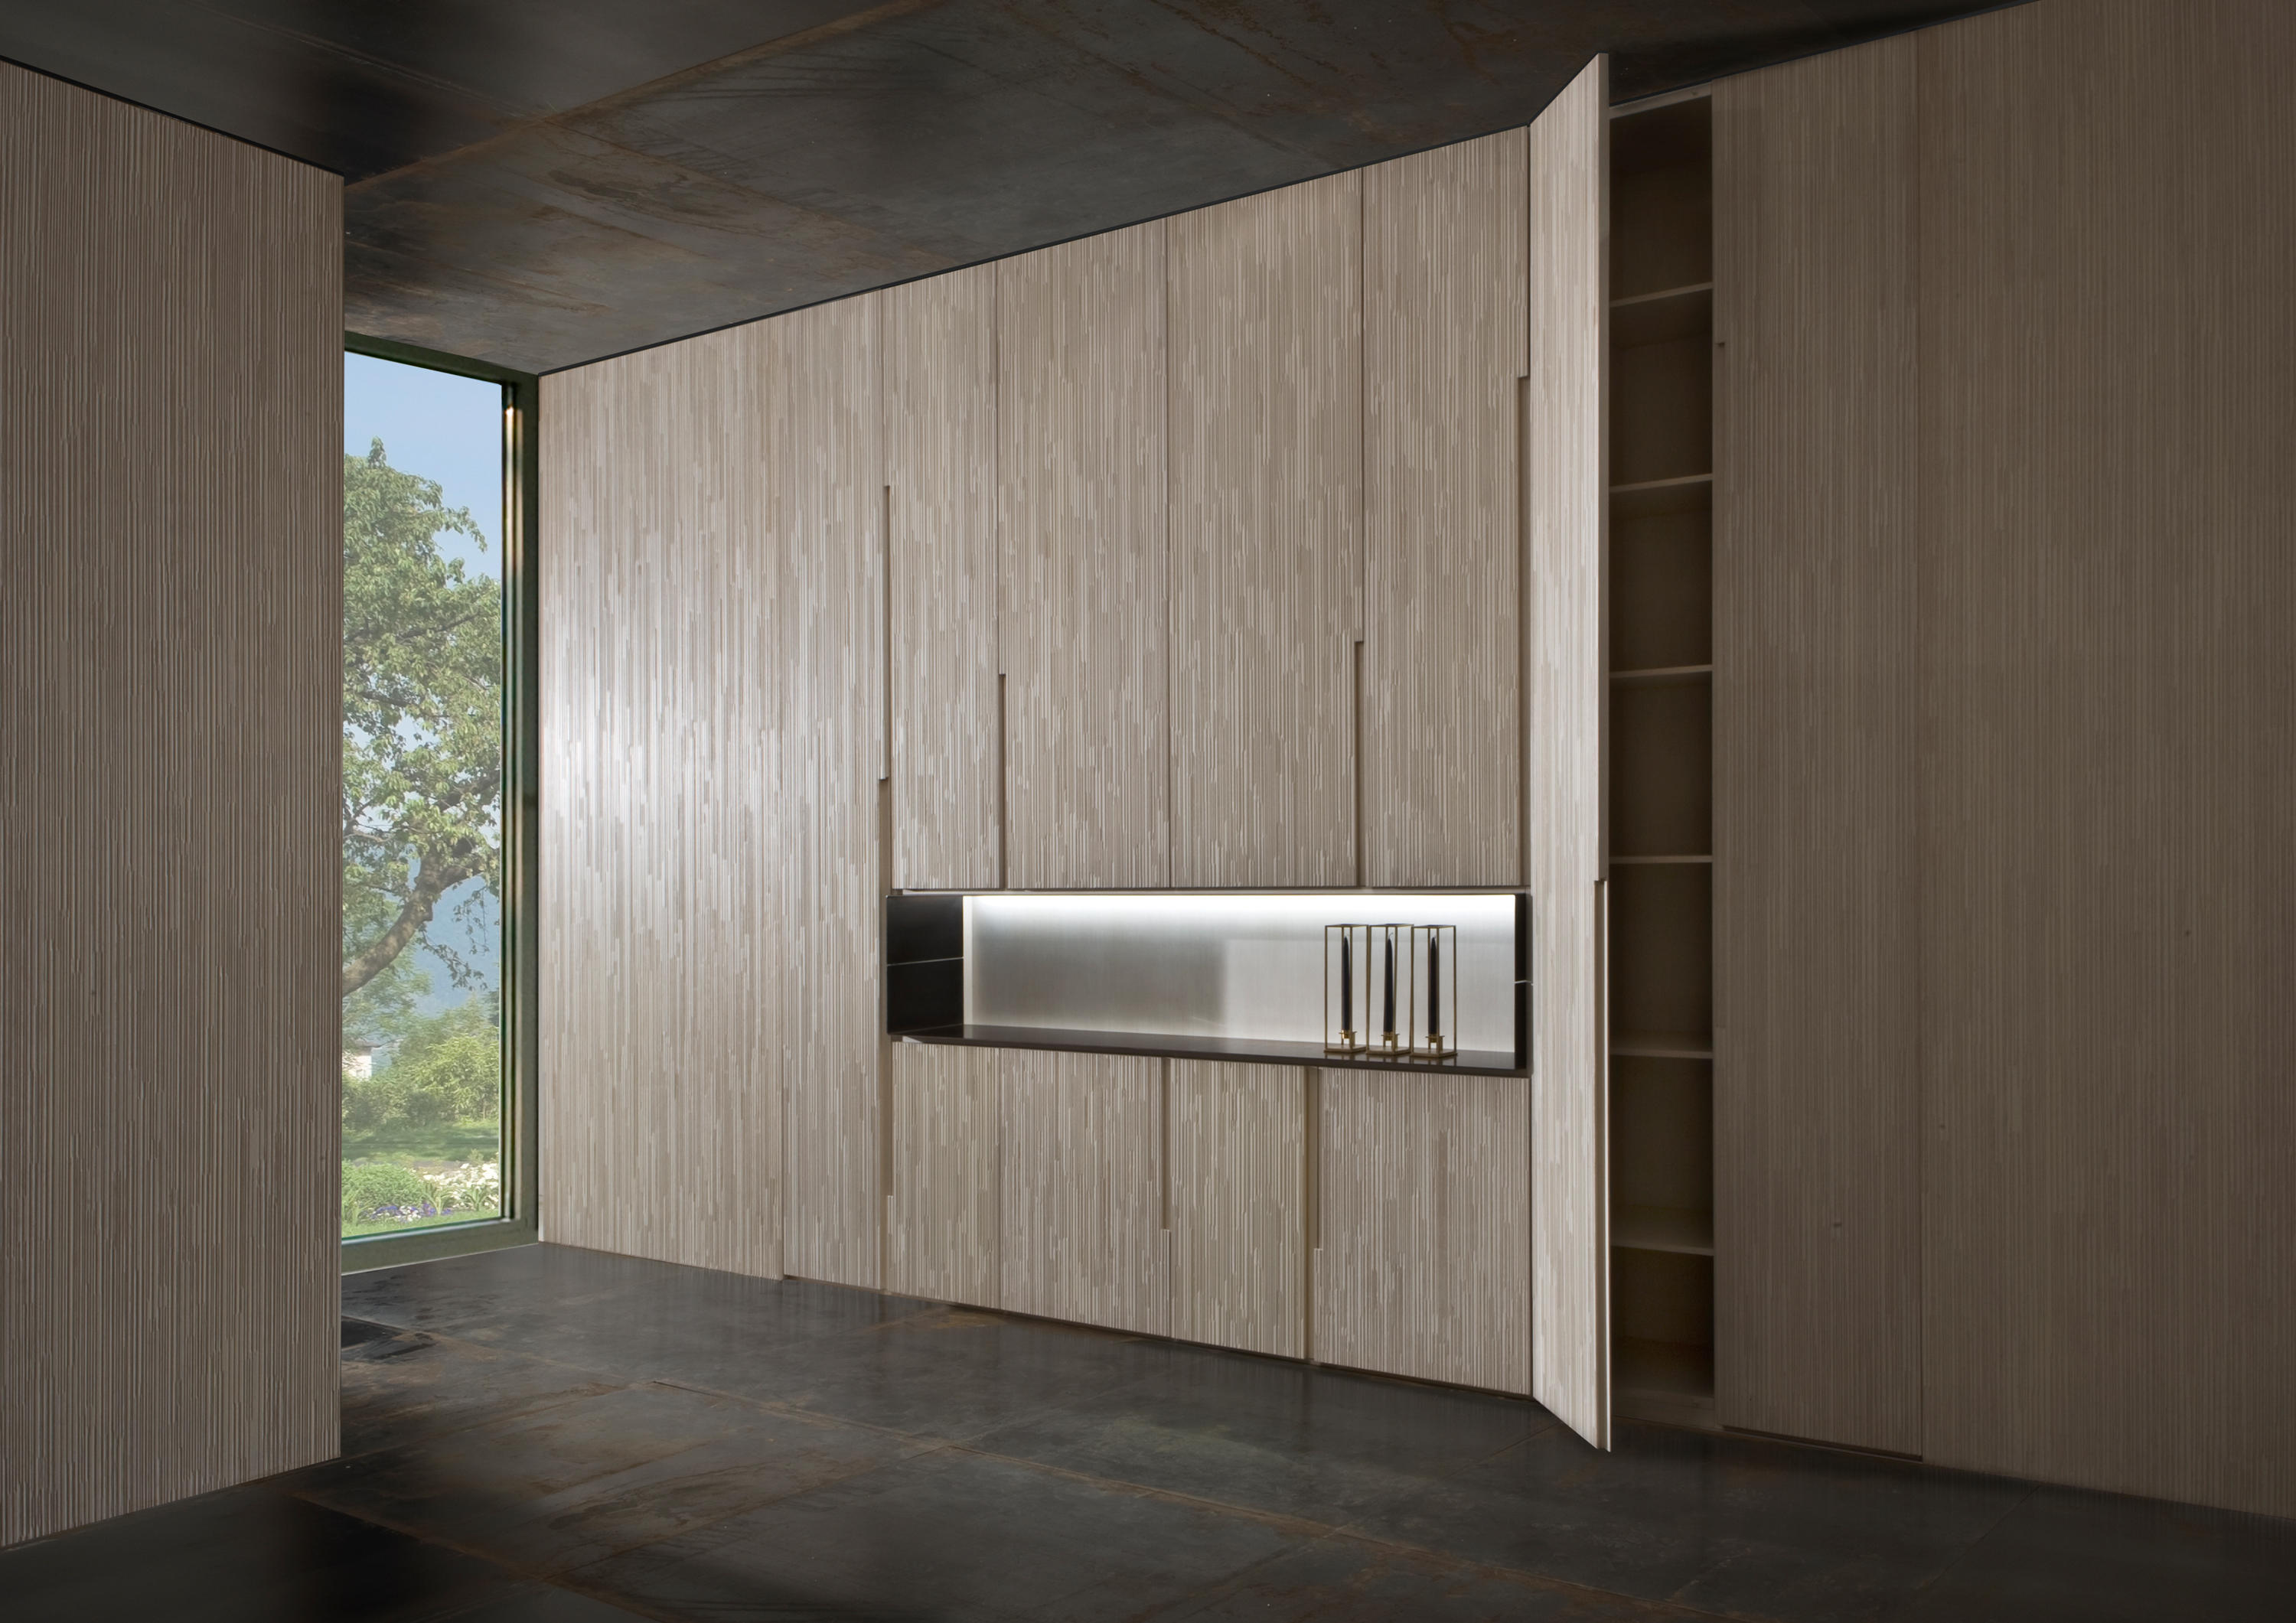 Decor wall covering panel panelling systems from laurameroni decor wall covering panel by laurameroni panelling systems amipublicfo Gallery